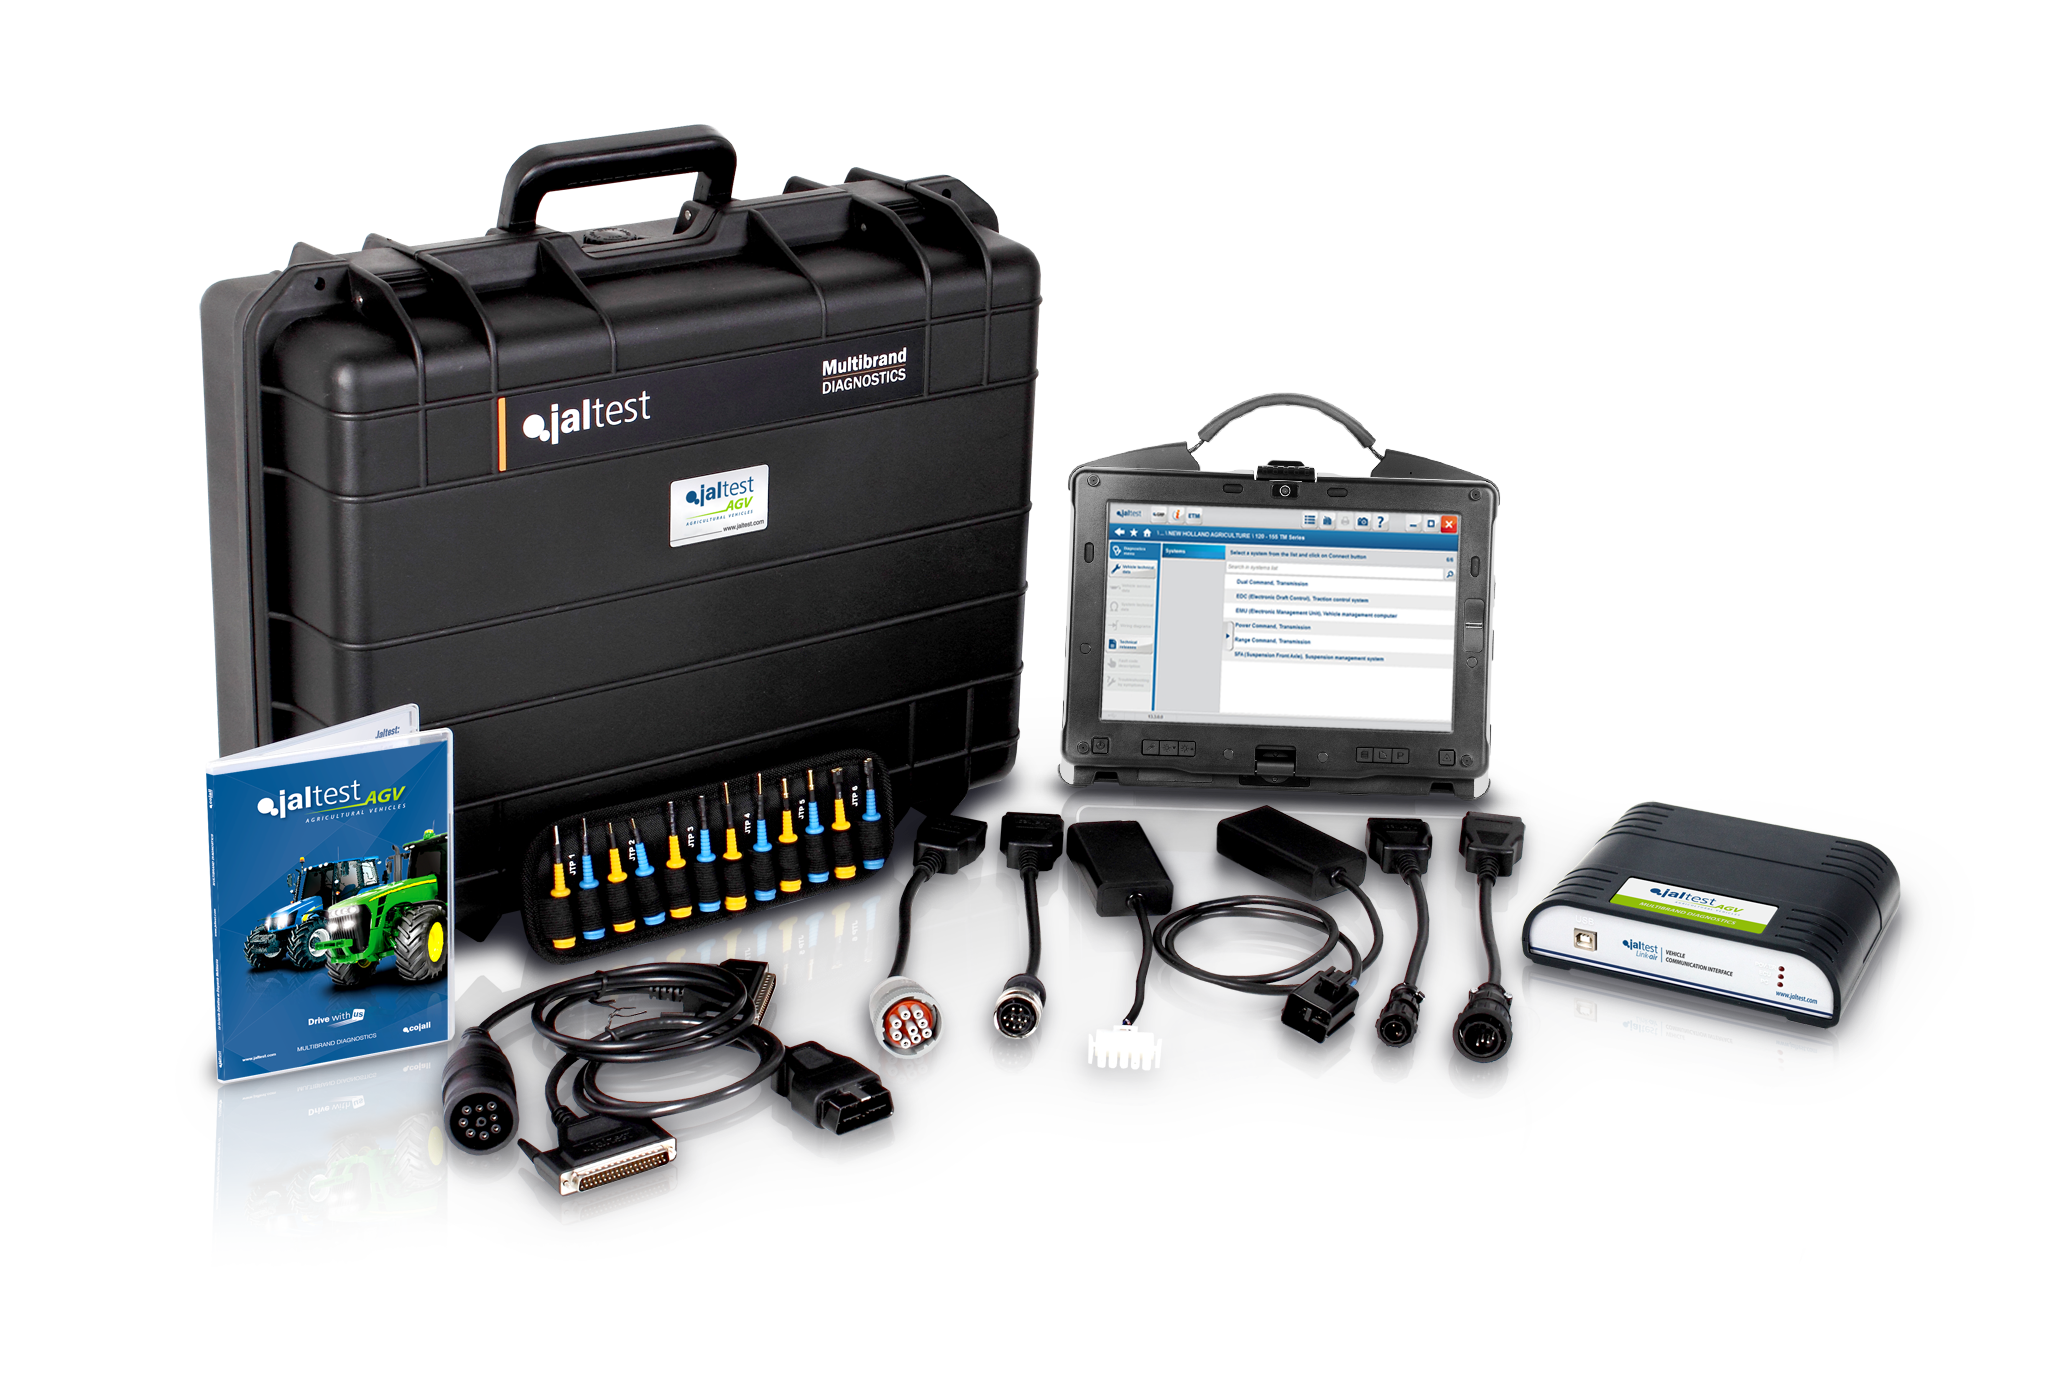 Genfitt | Jaltest Multibrand Diagnostics